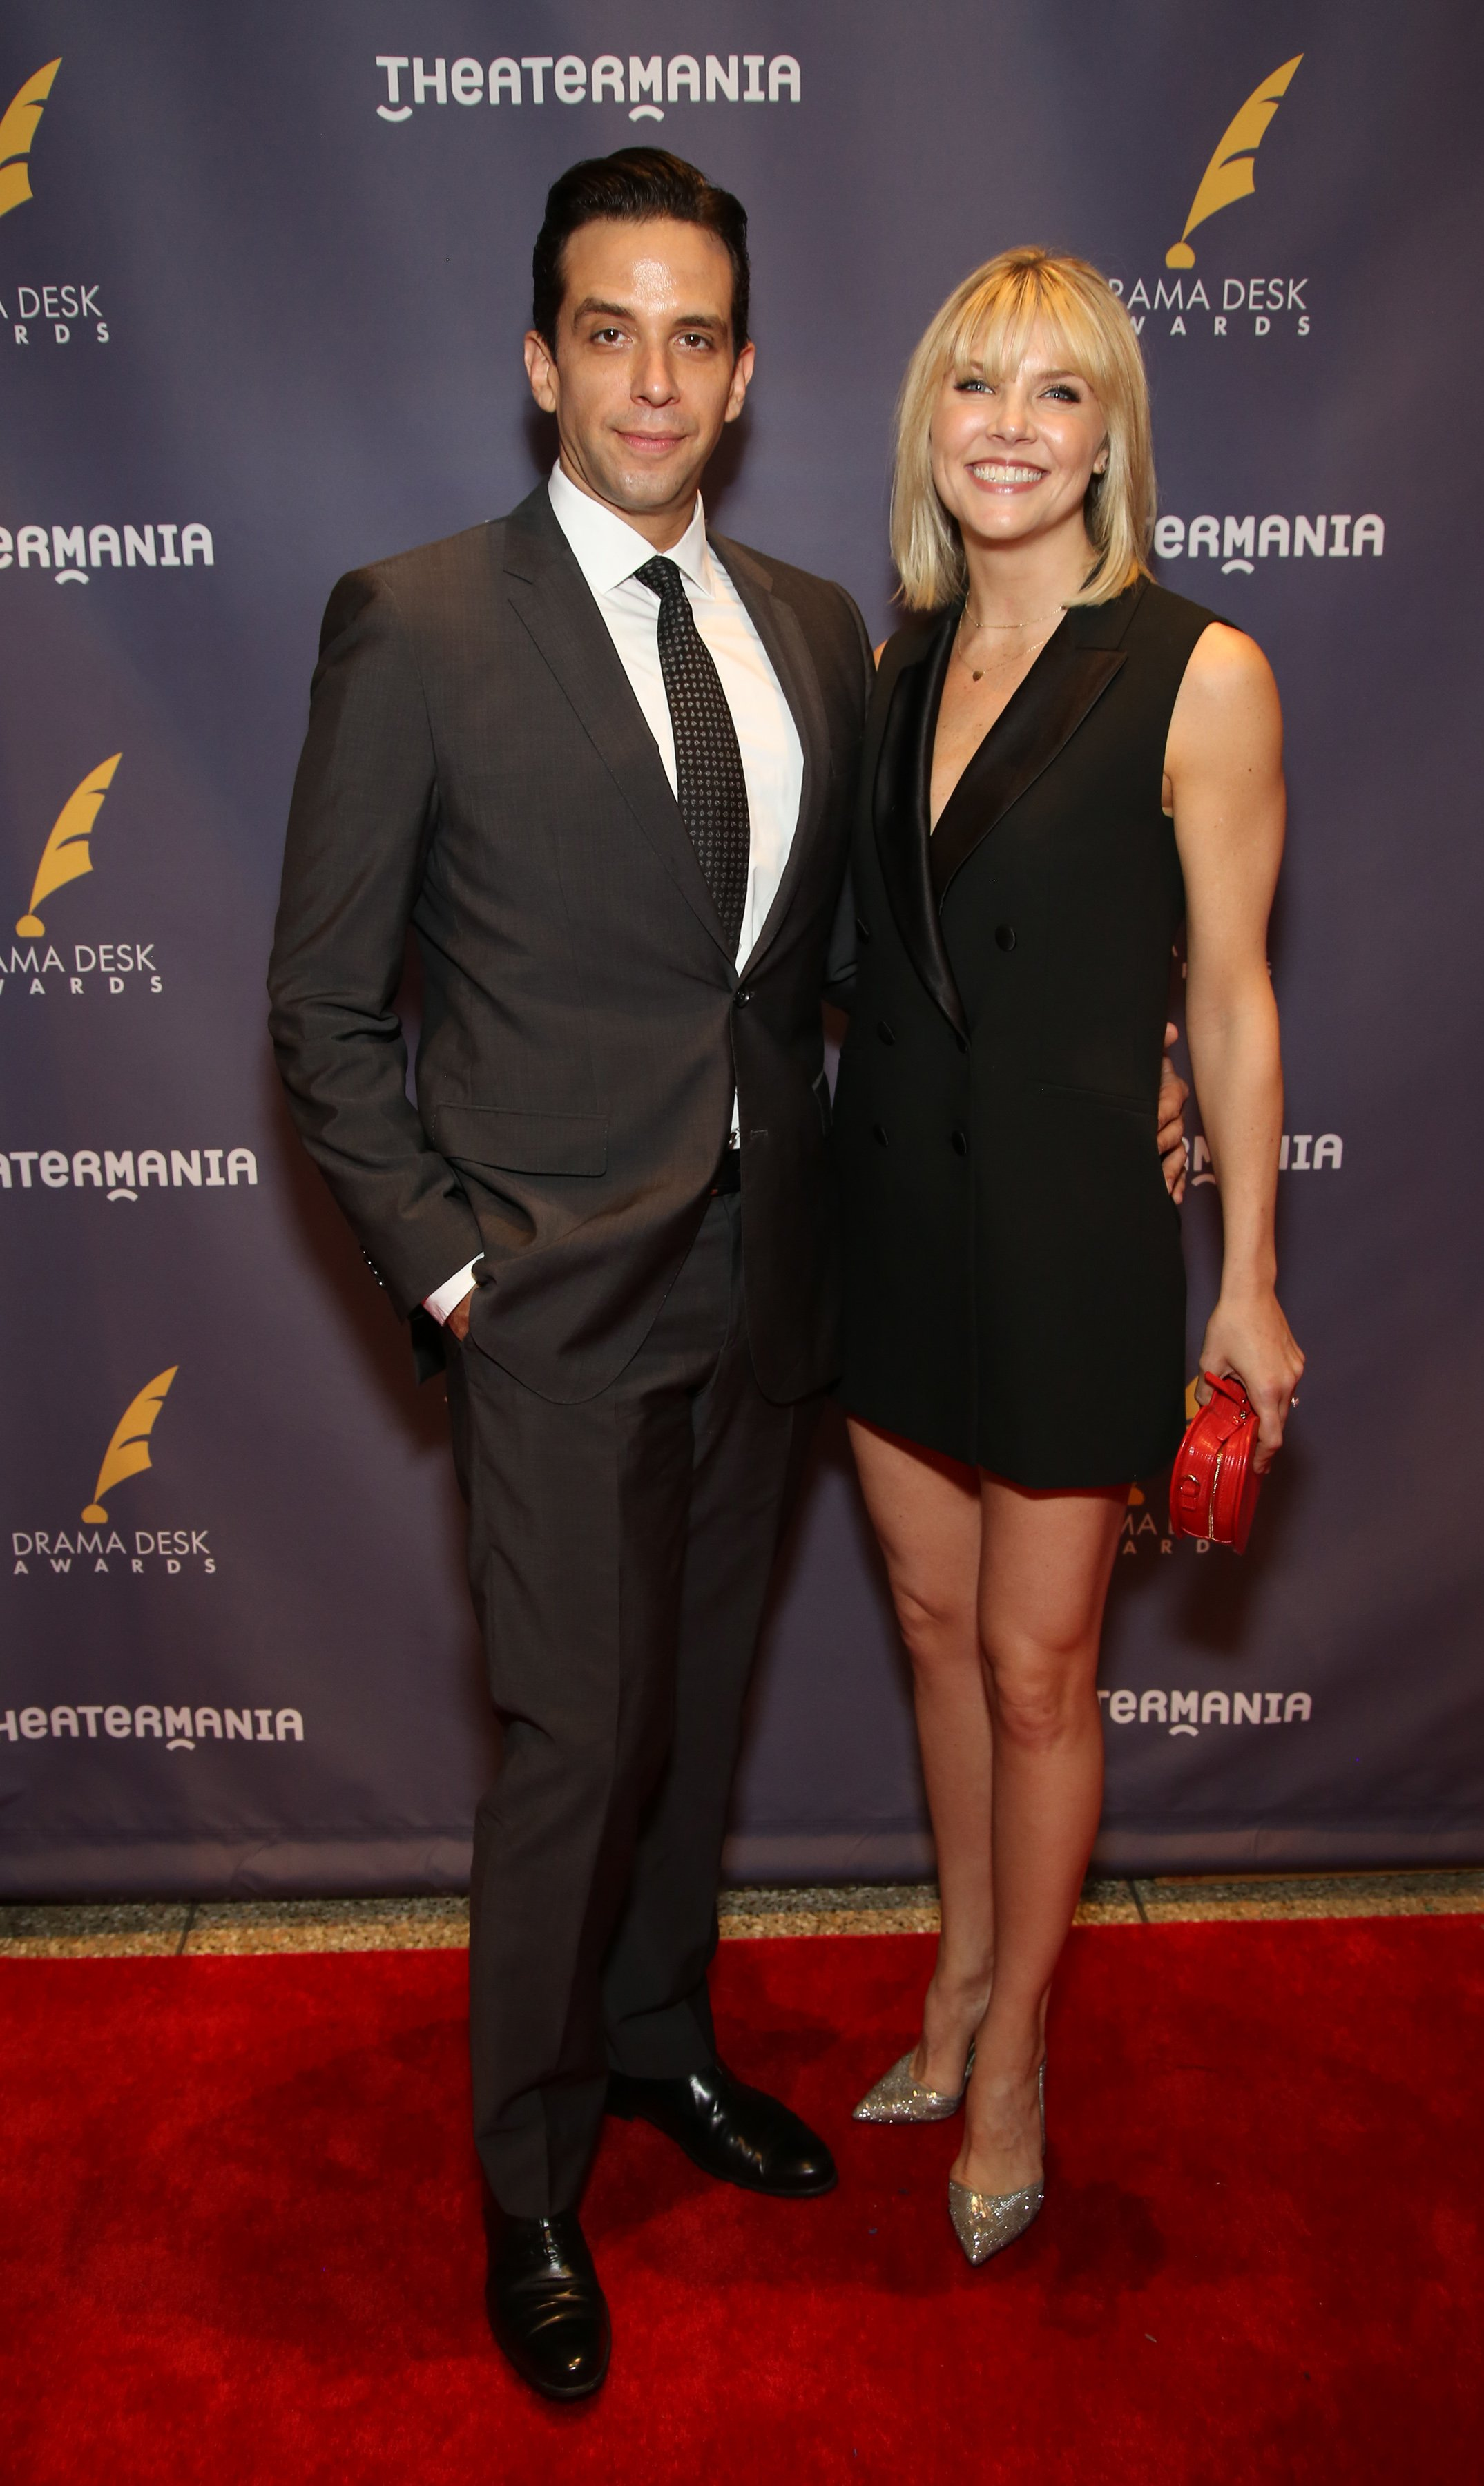 Nick Cordero and Amanda Kloots attend the 2017 Drama Desk Awards on June 4, 2017, in New York City.   Source: Getty Images.